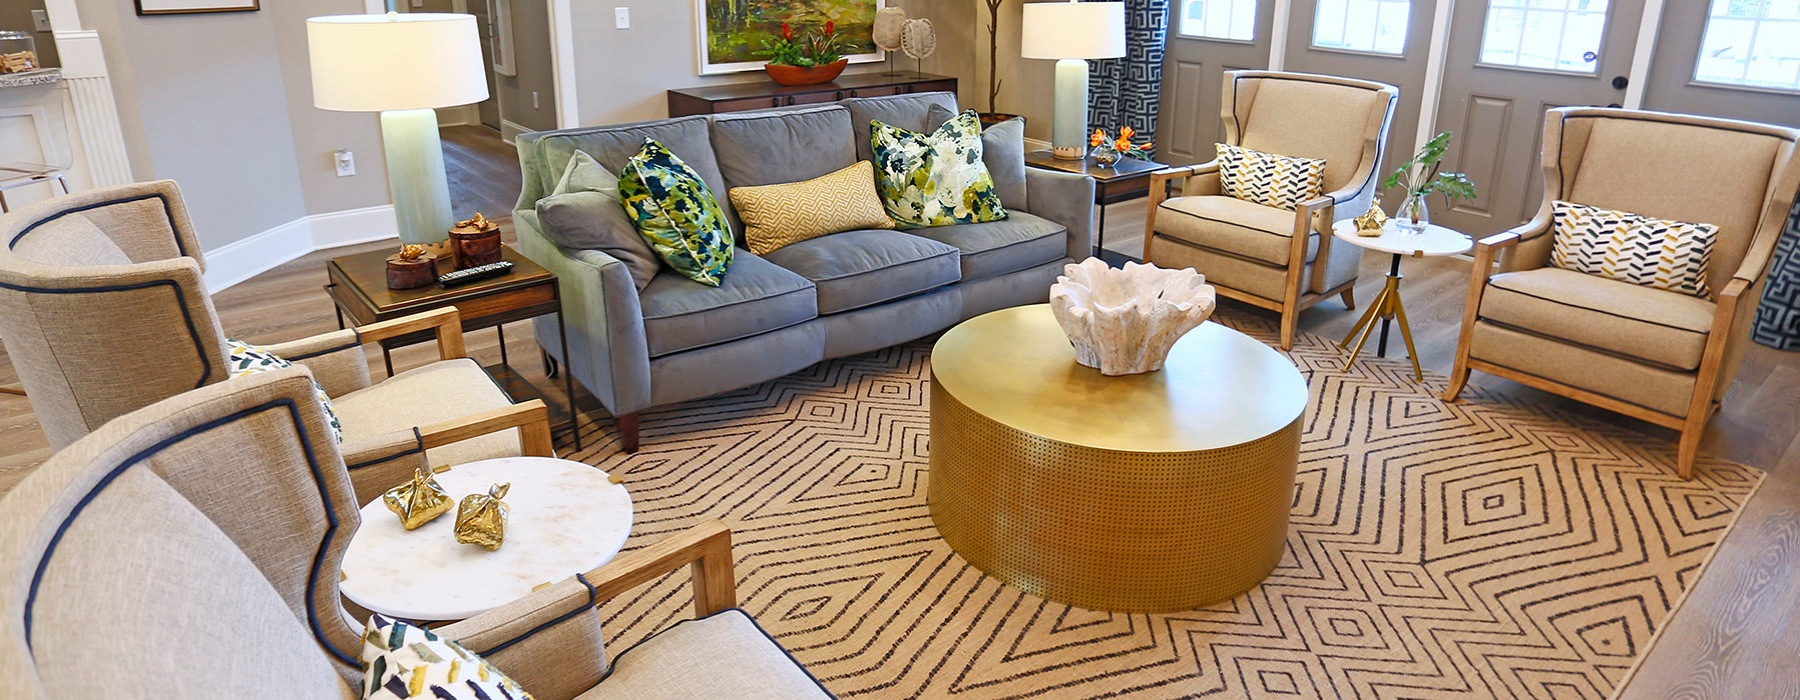 Resident Lounge With Comfortable Seating At Laurel View Apartments in Concord, NC